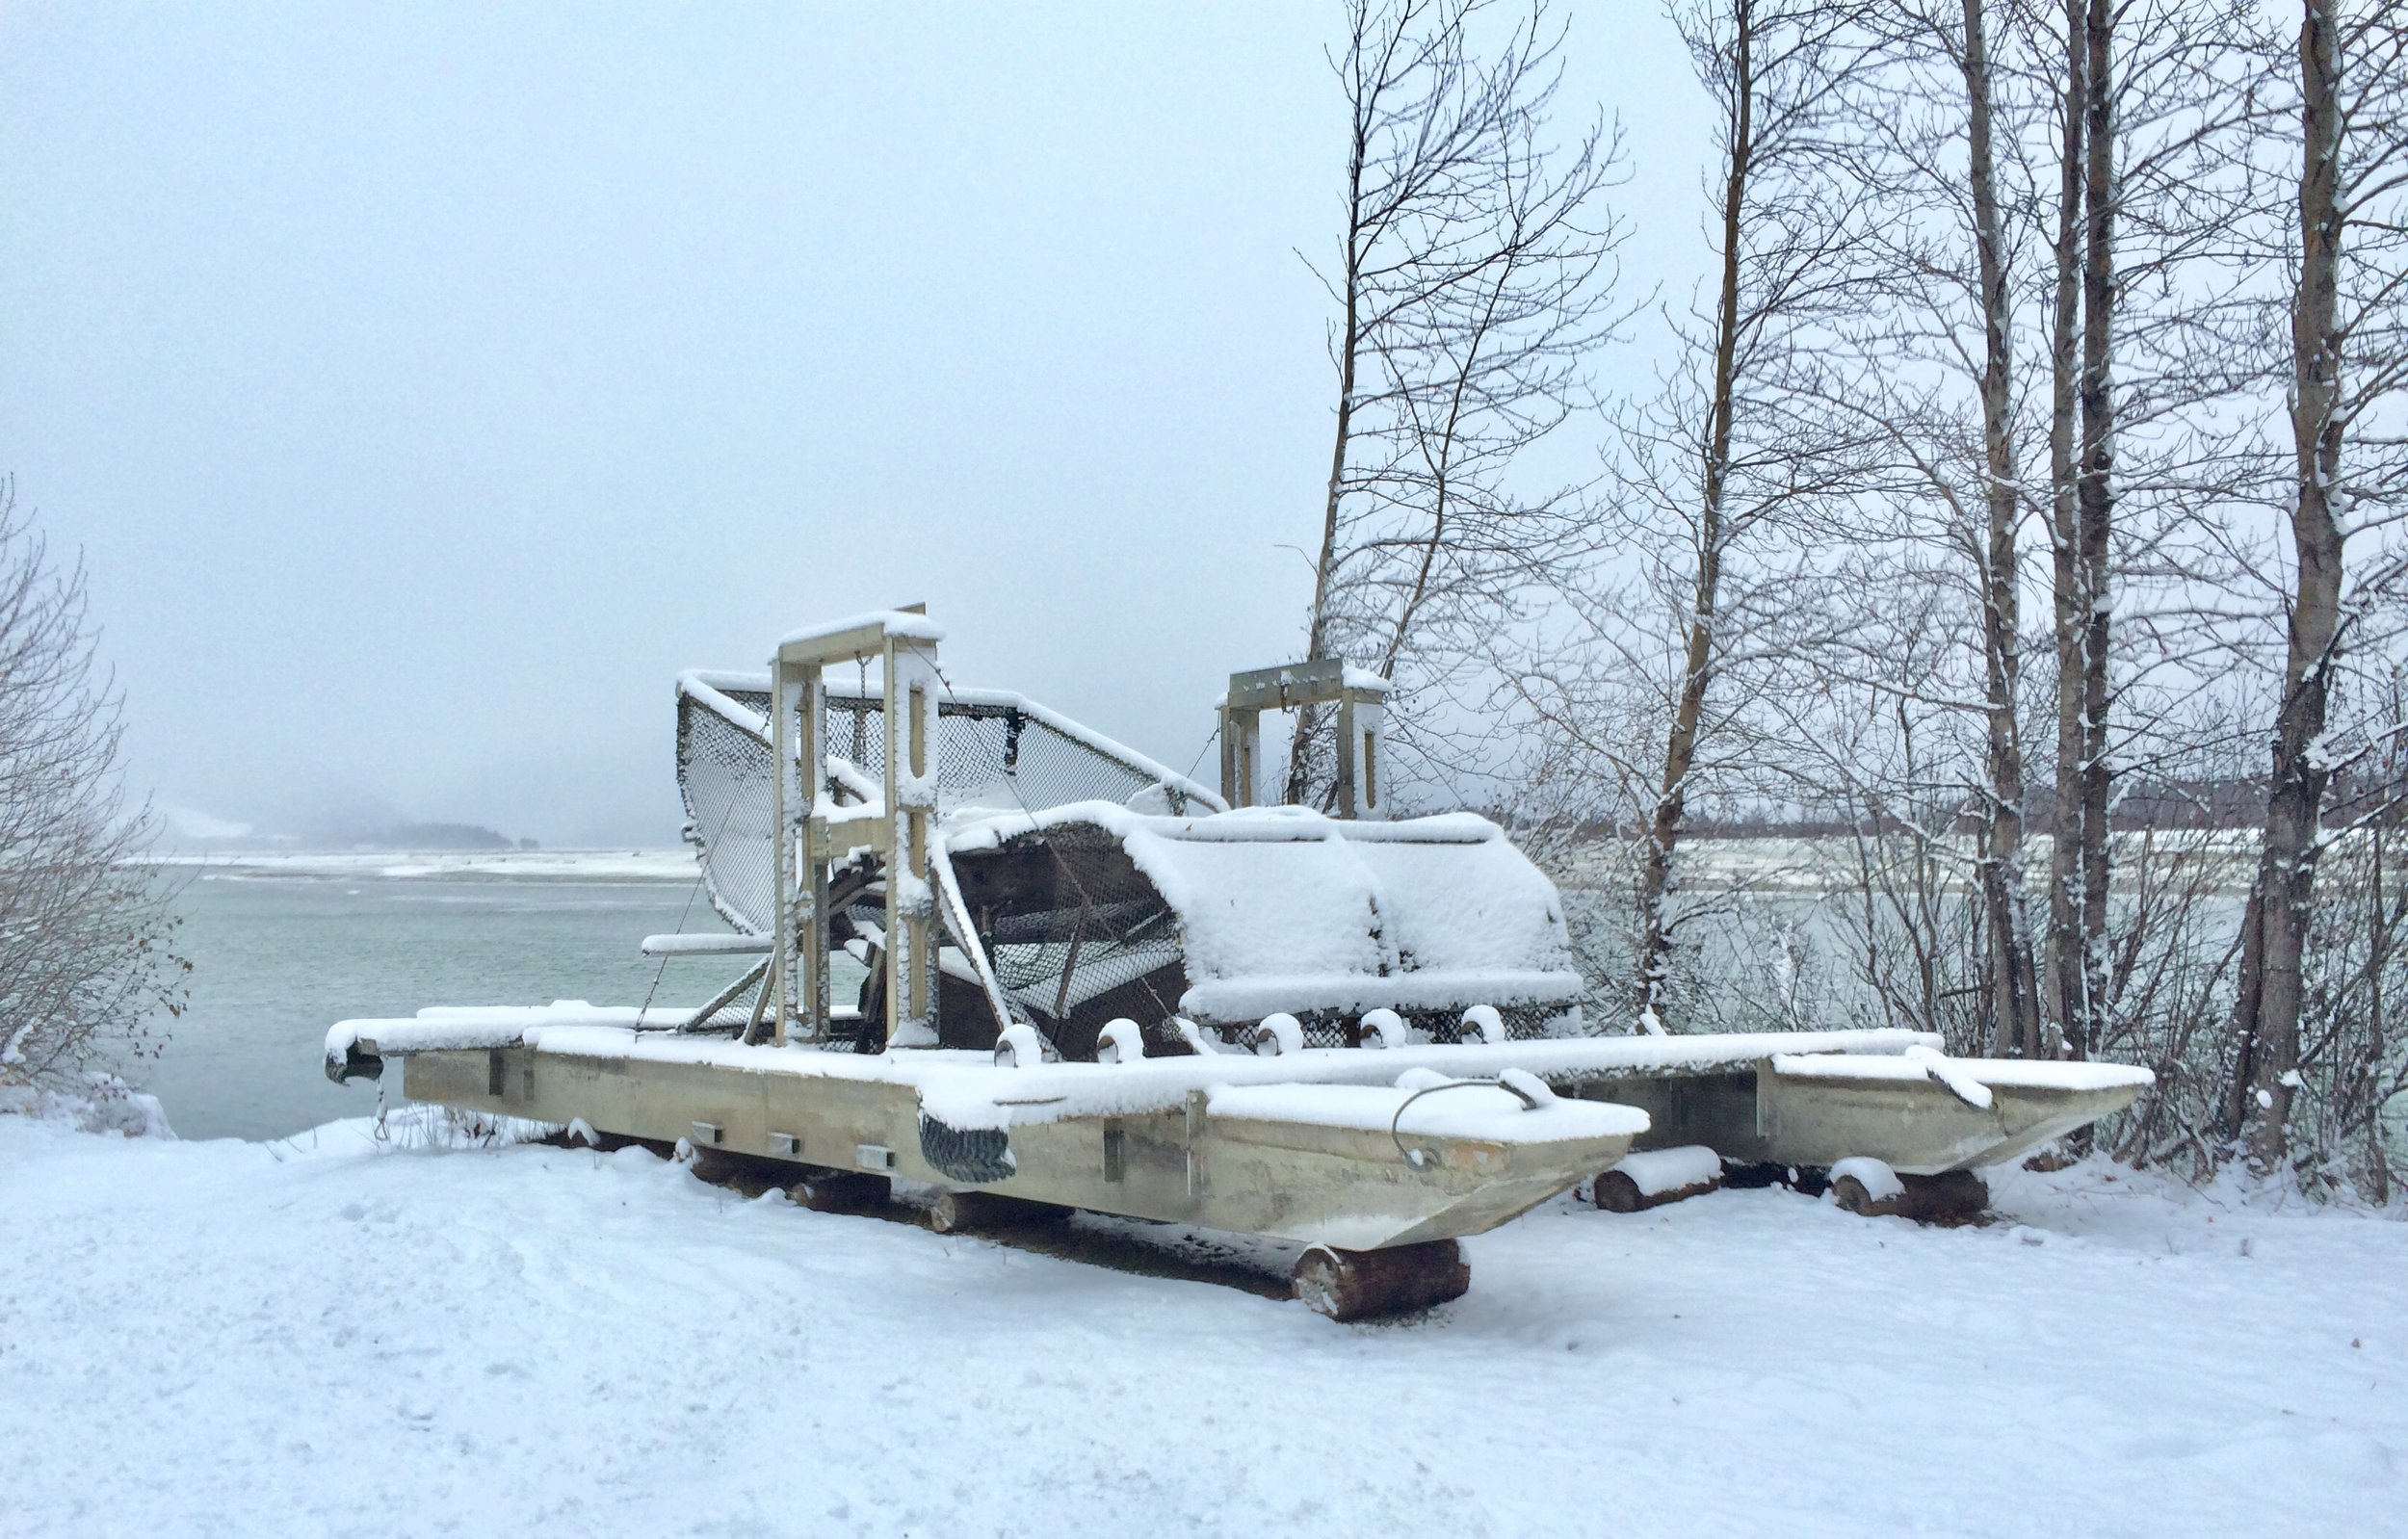 It's not the Flintstones' newest vehicle. It's a fish wheel, a water-powered device used for catching fish.